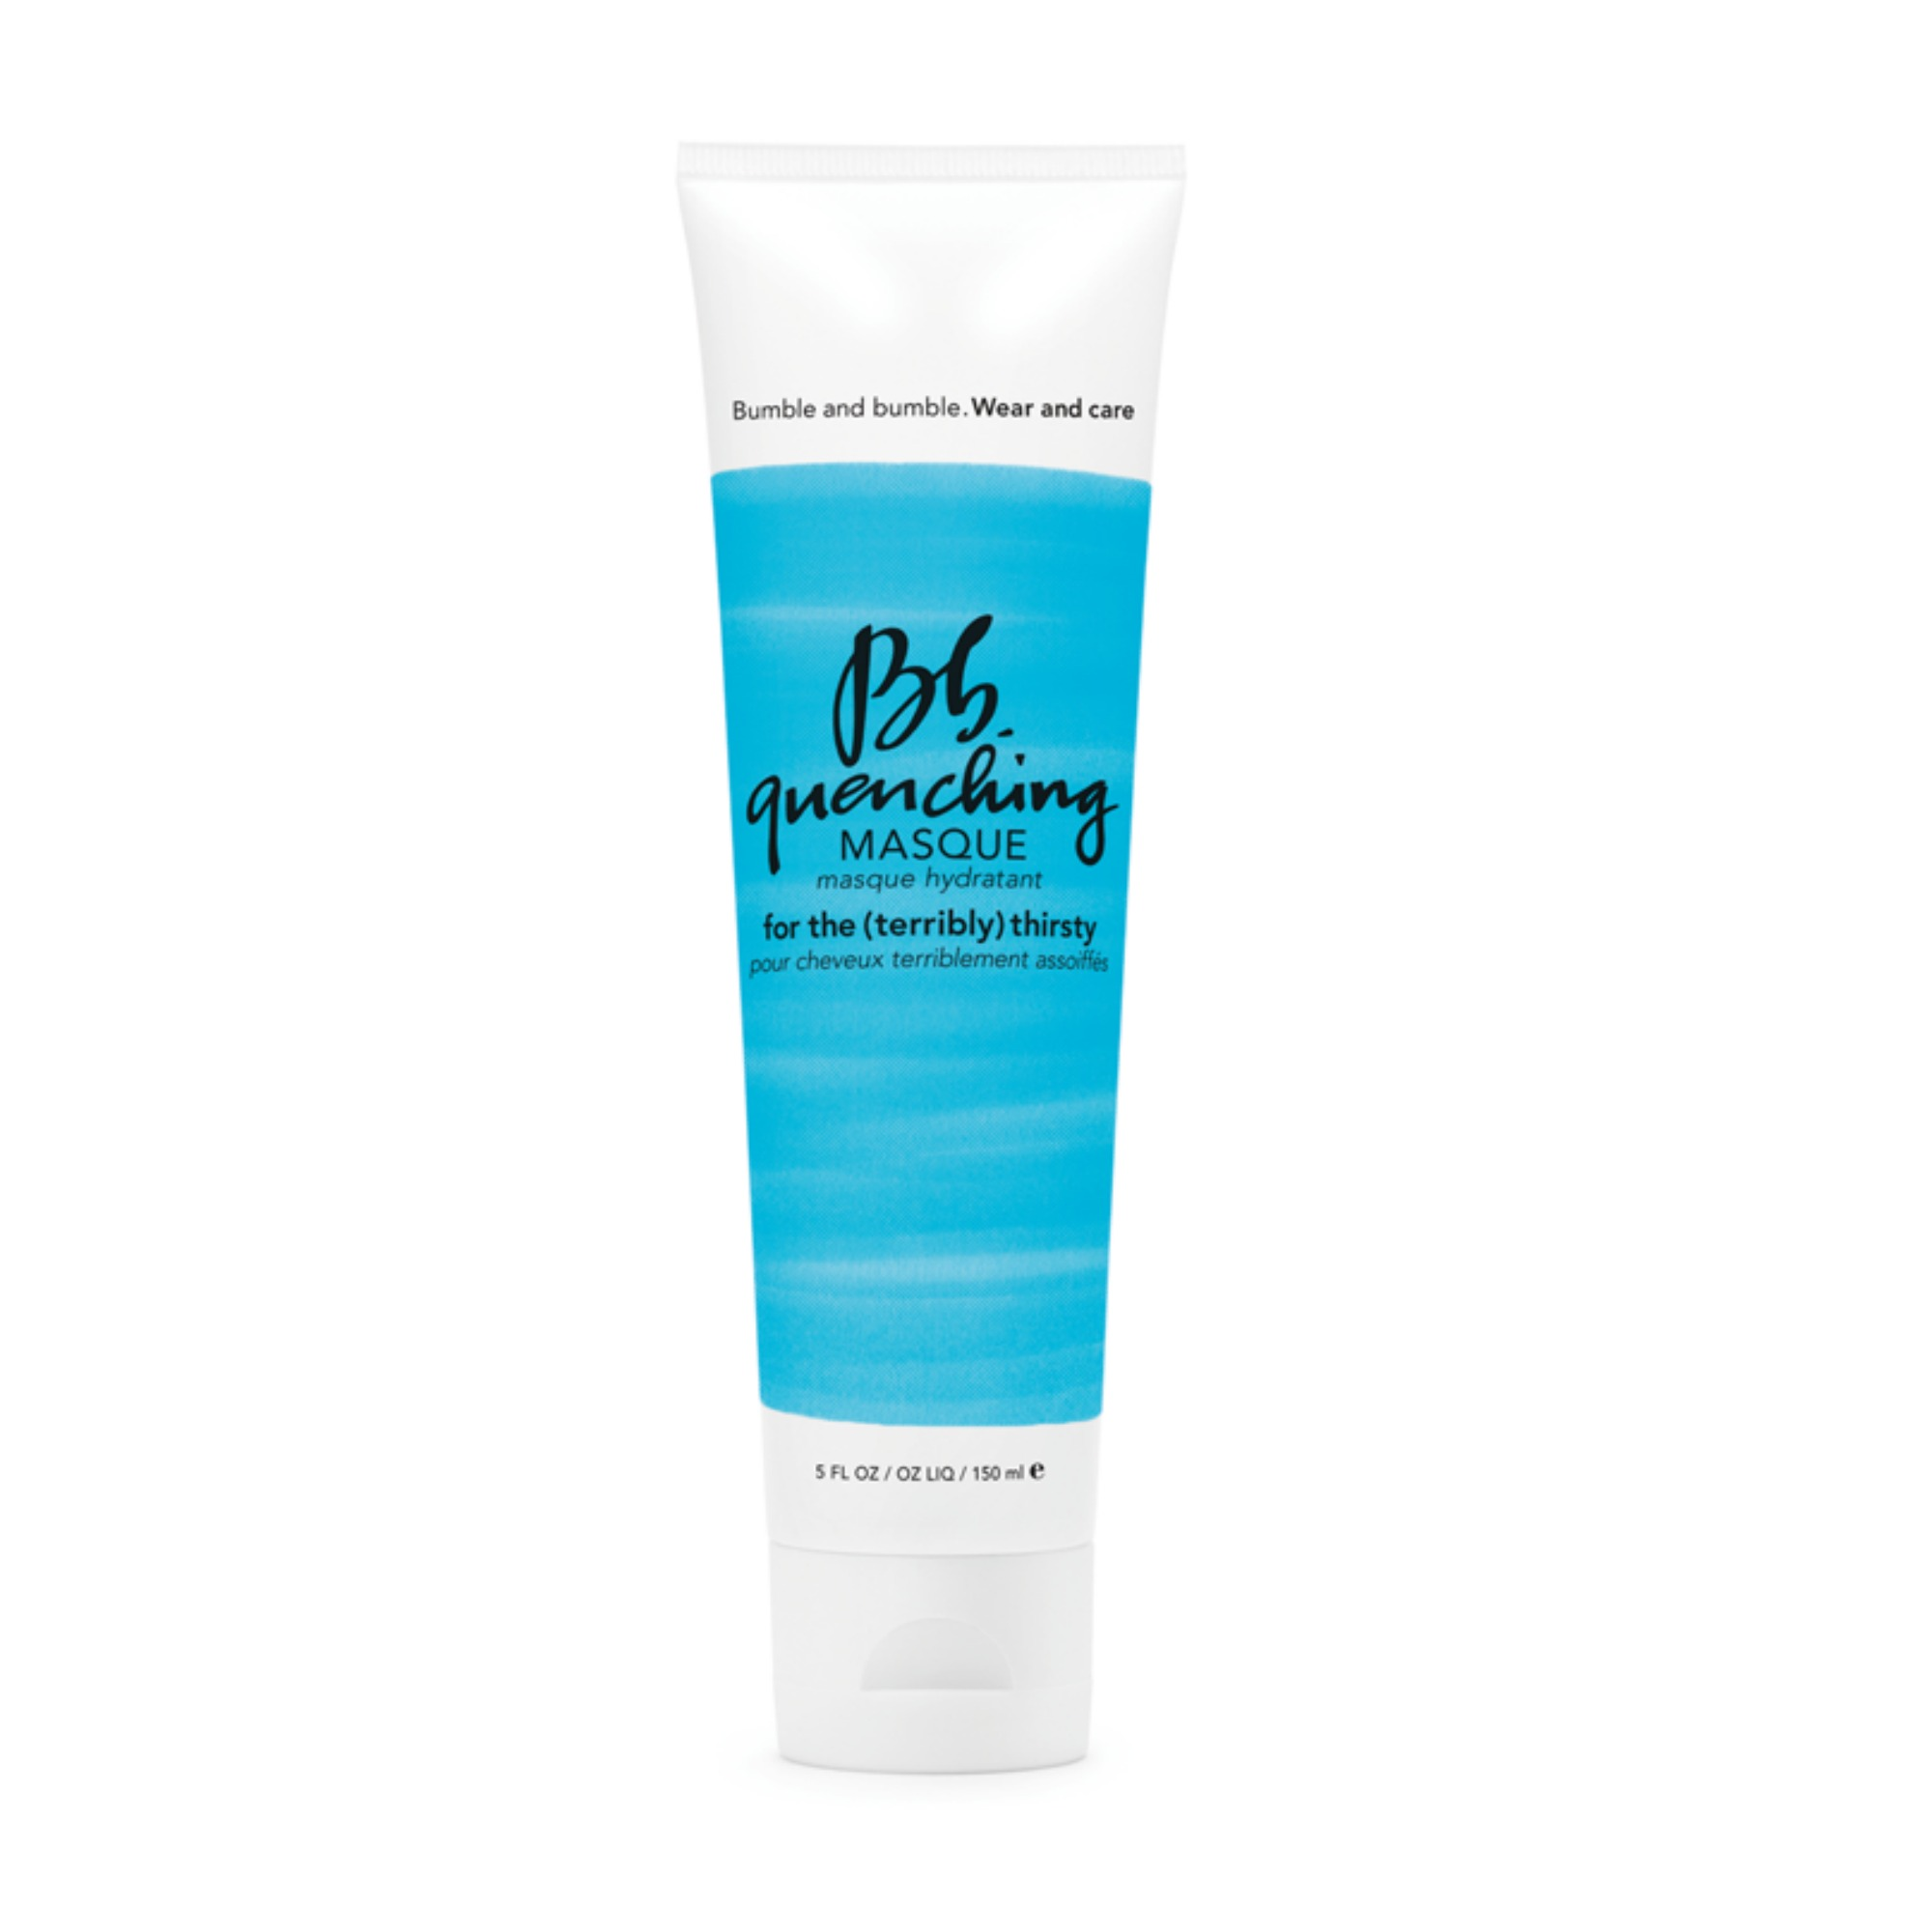 Bumble and Bumble Quenching Masque, $38